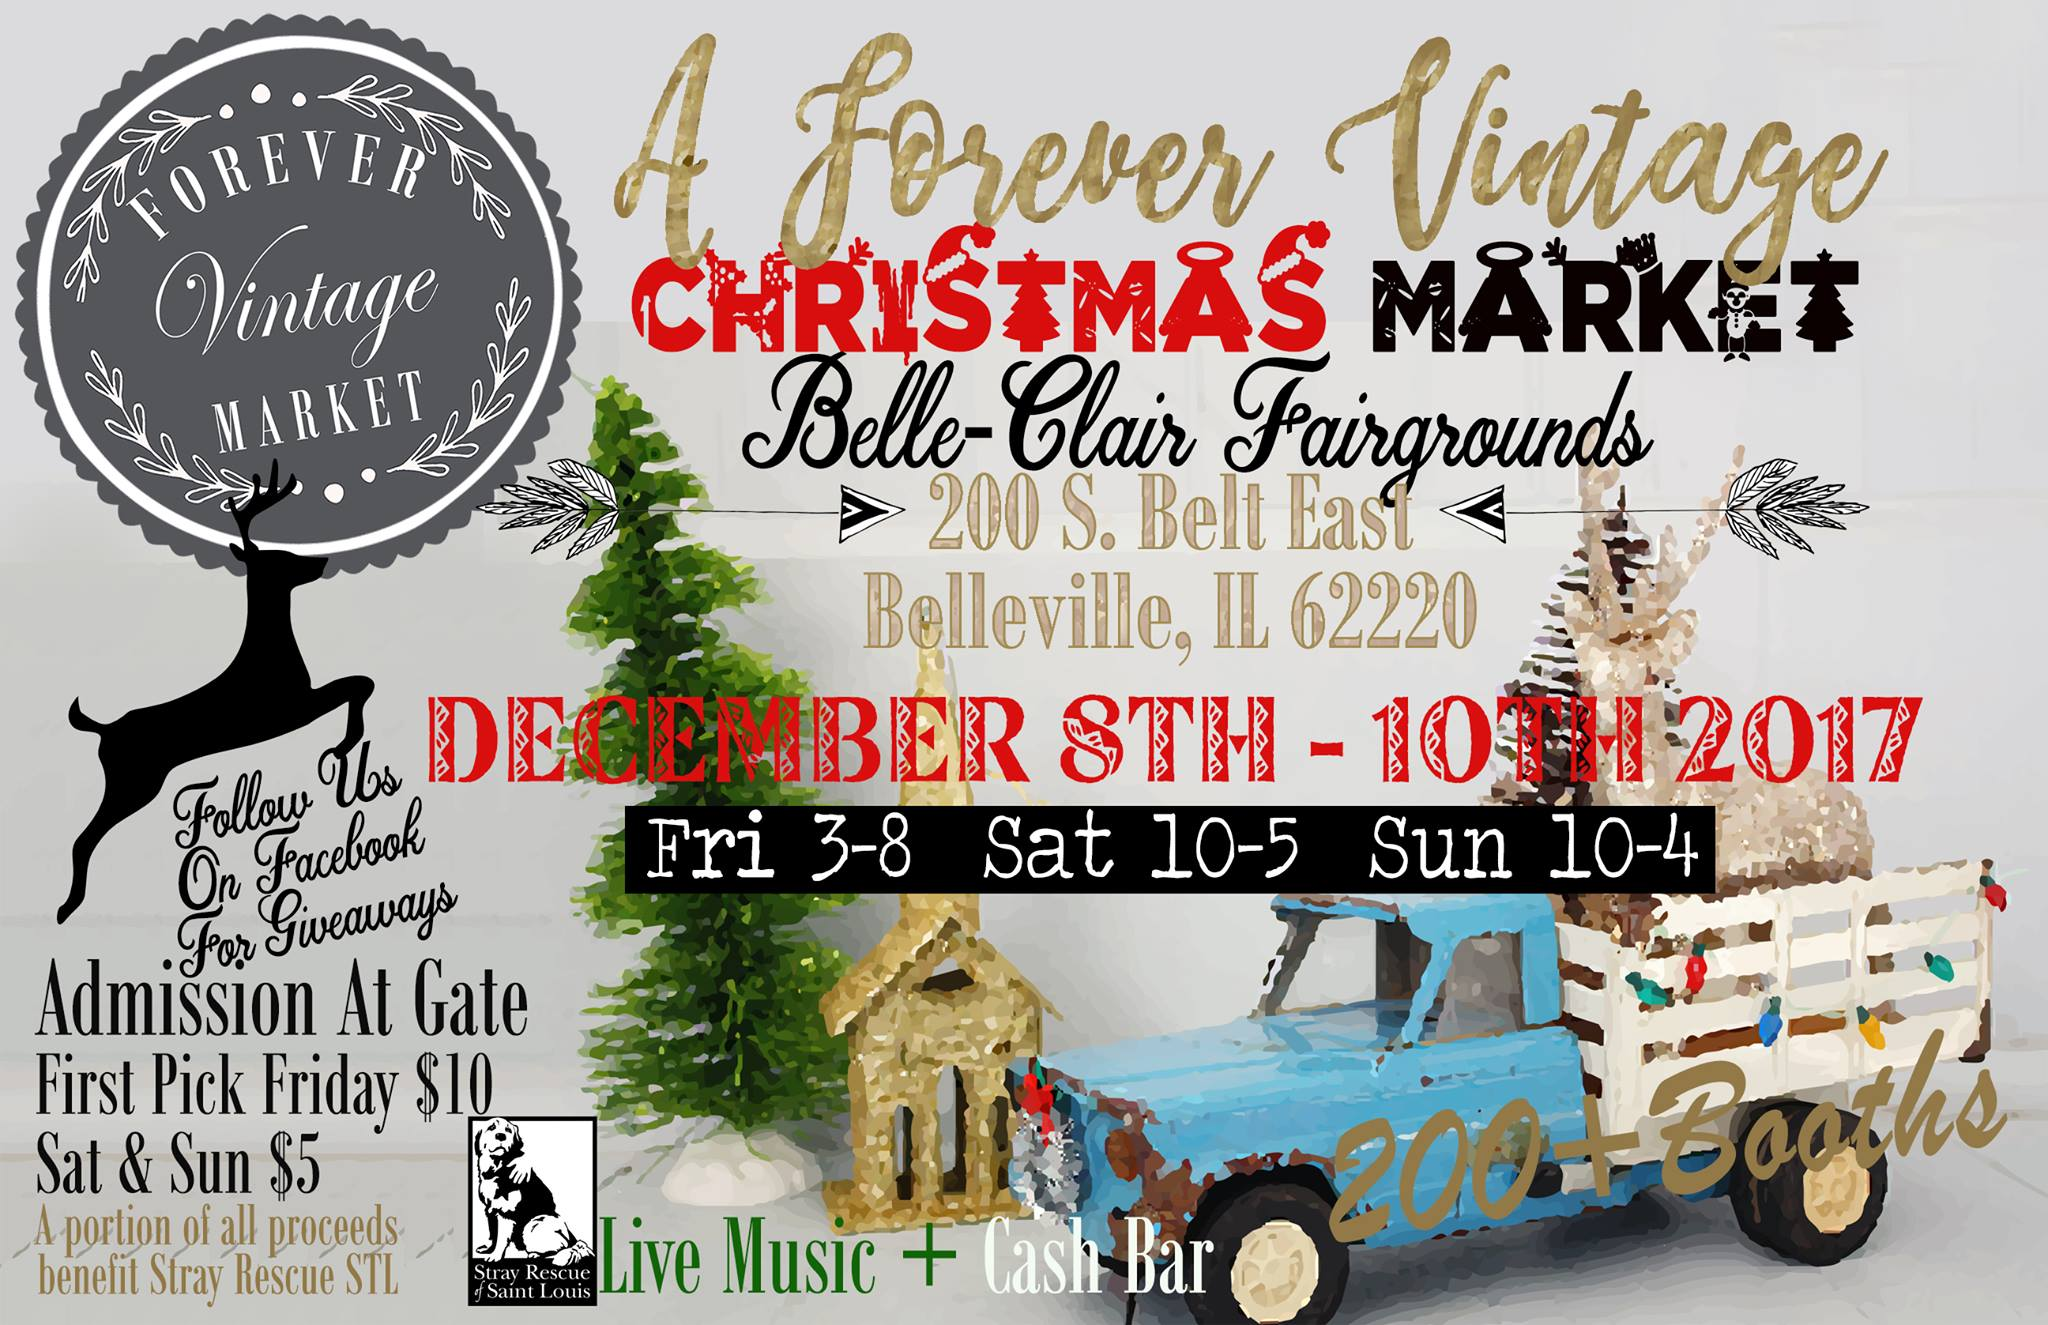 Belleville Il Christmas Market 2020 Stray Rescue of St. Louis   Forever Vintage Market   Christmas